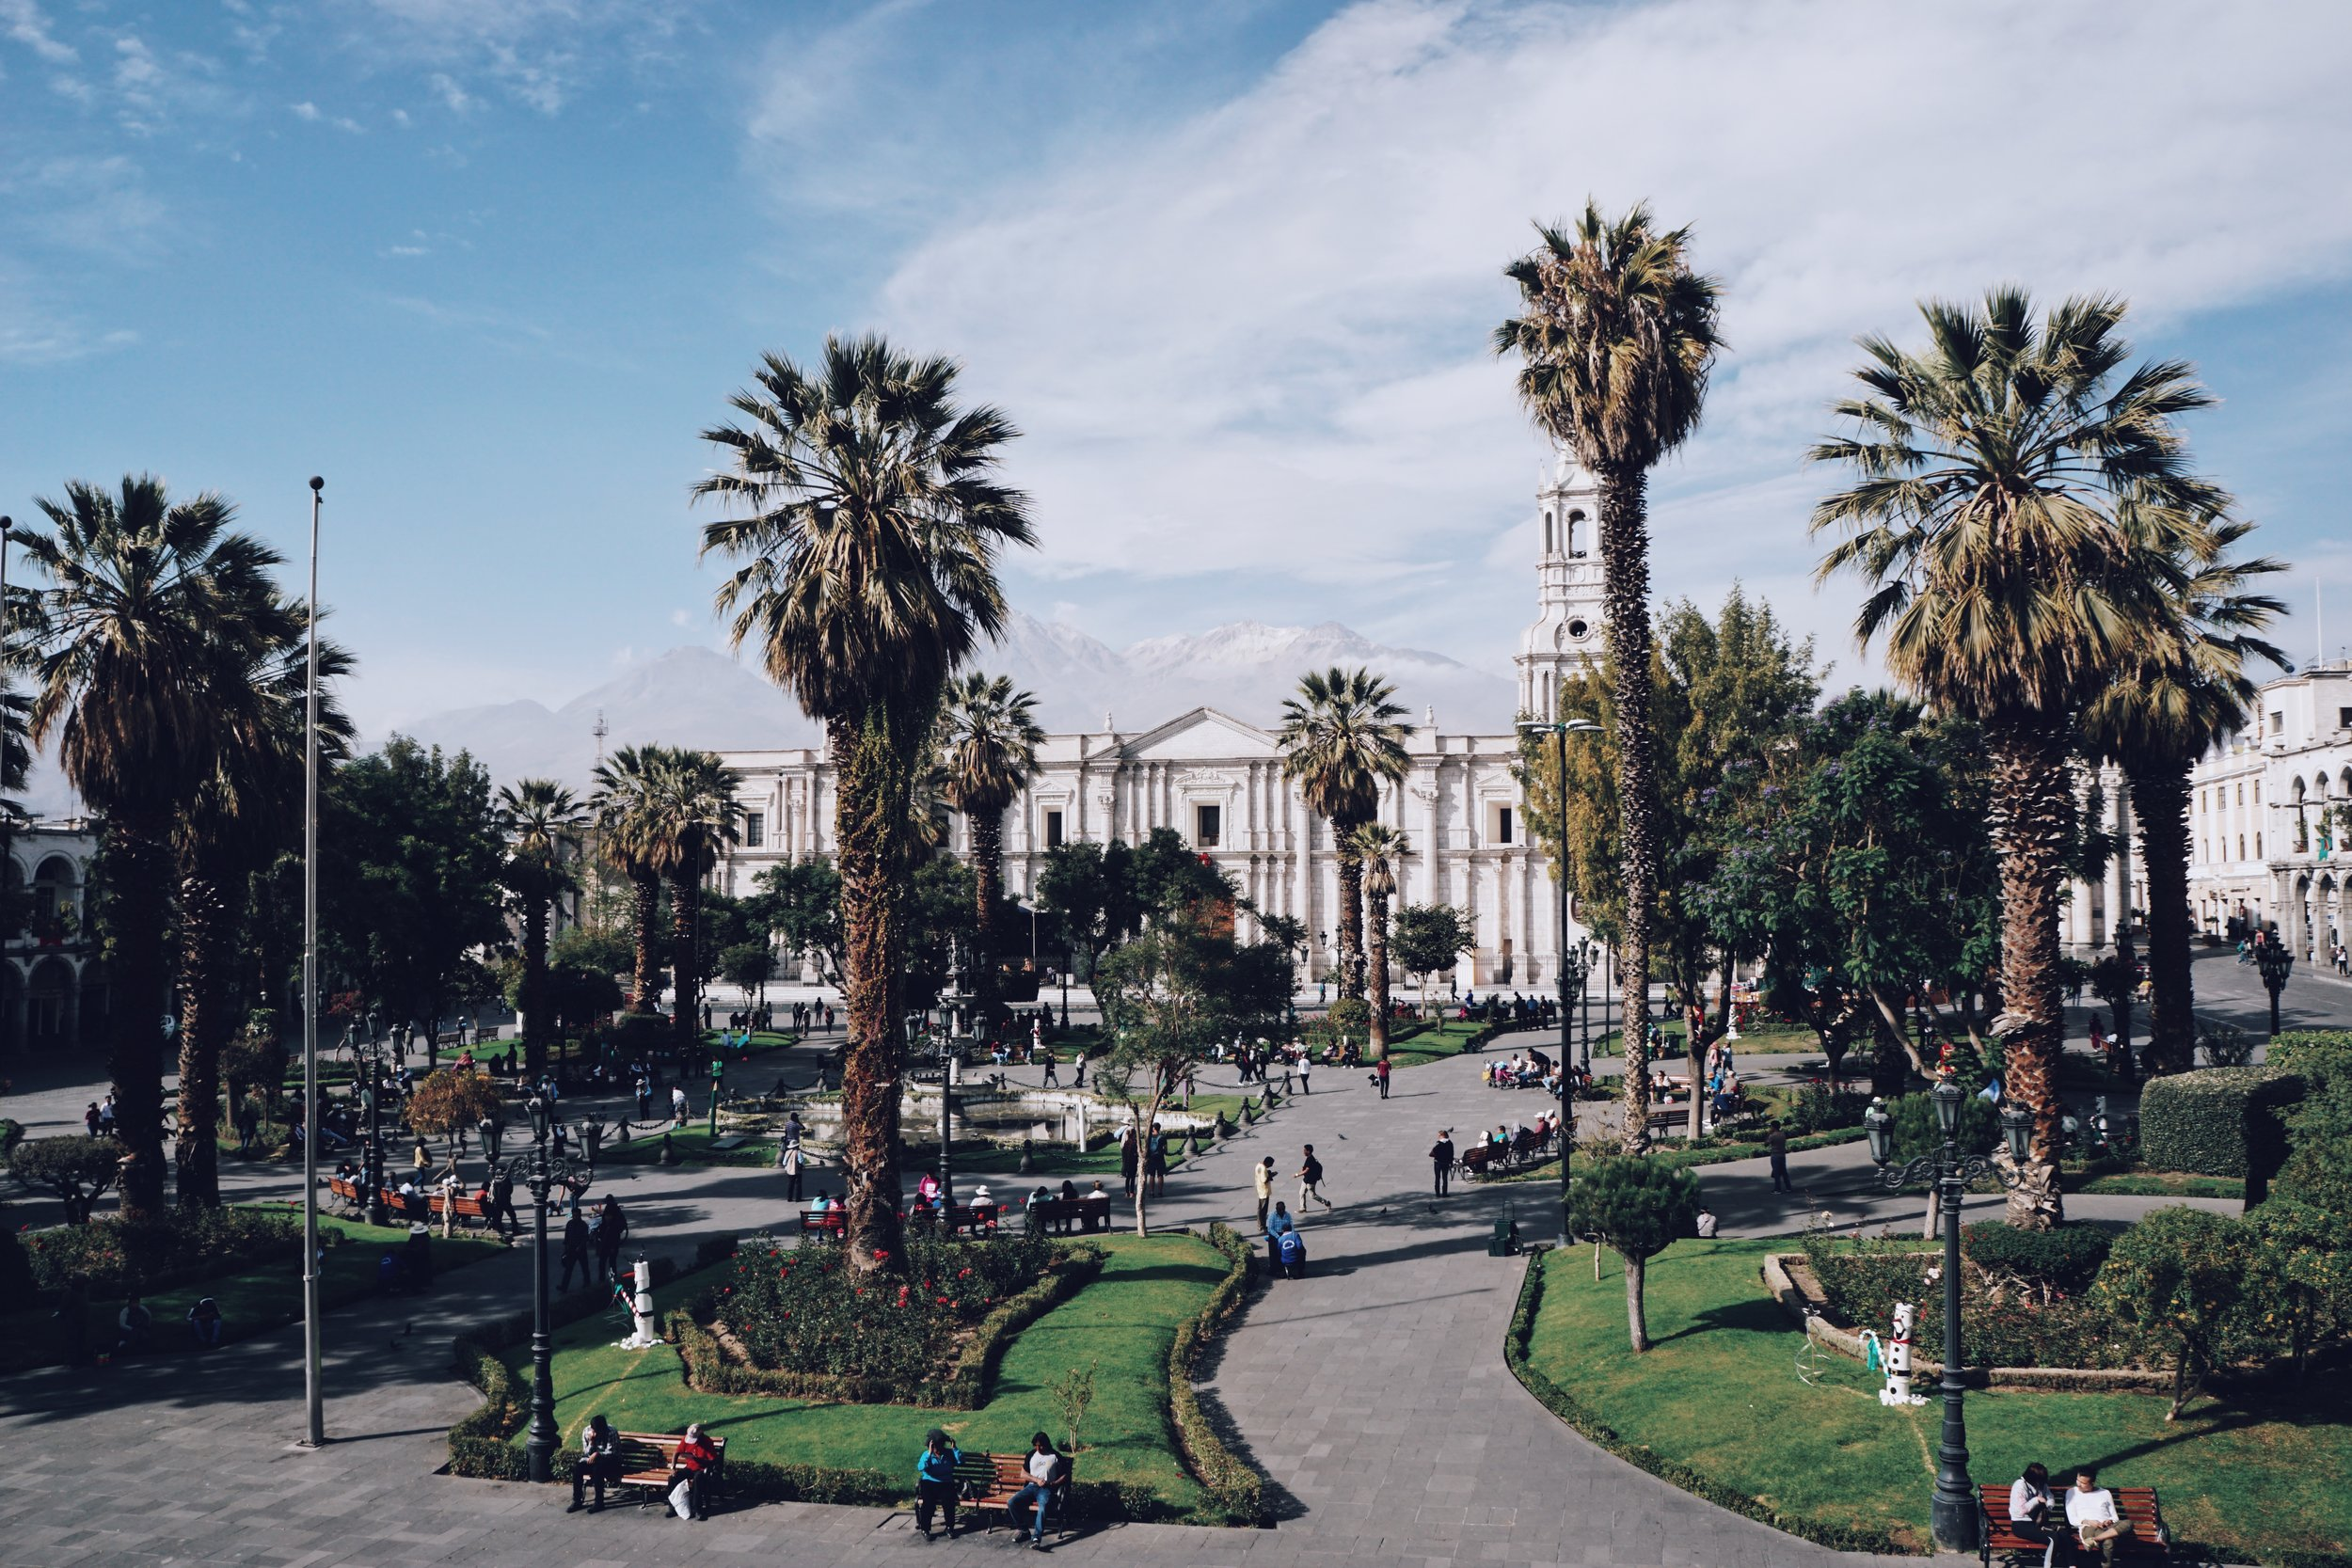 Above: Plaza de Armas Arequipa. Right: Lunch special at Ratatouille.